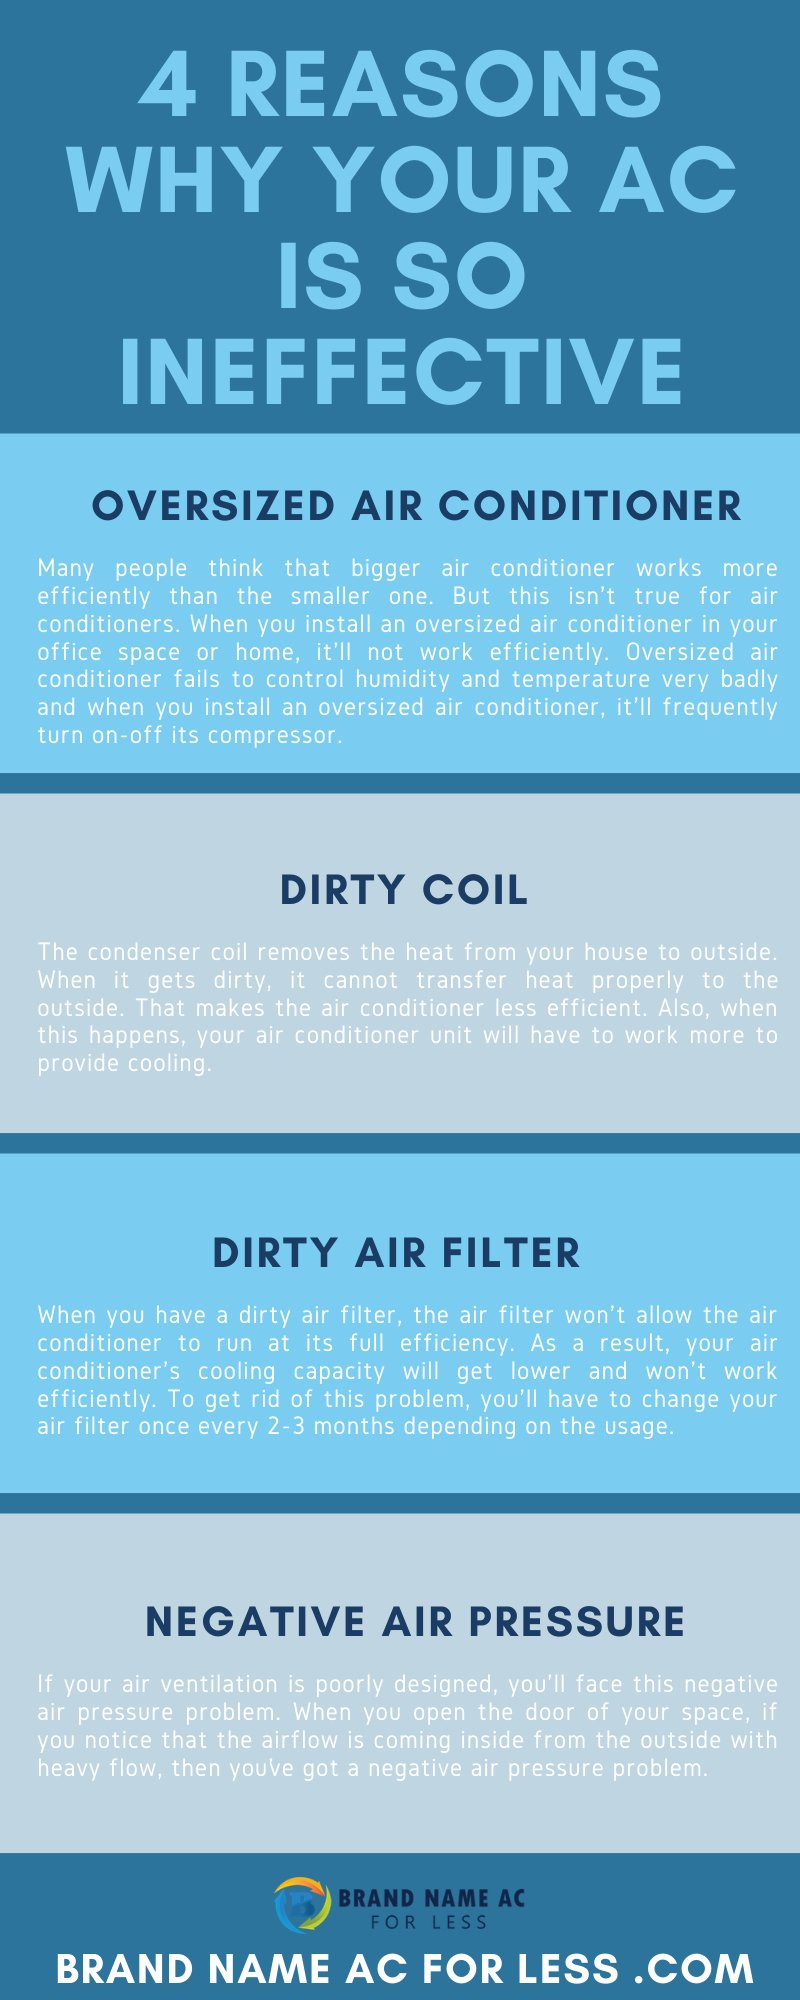 4 Reasons Why Your AC is So Ineffective